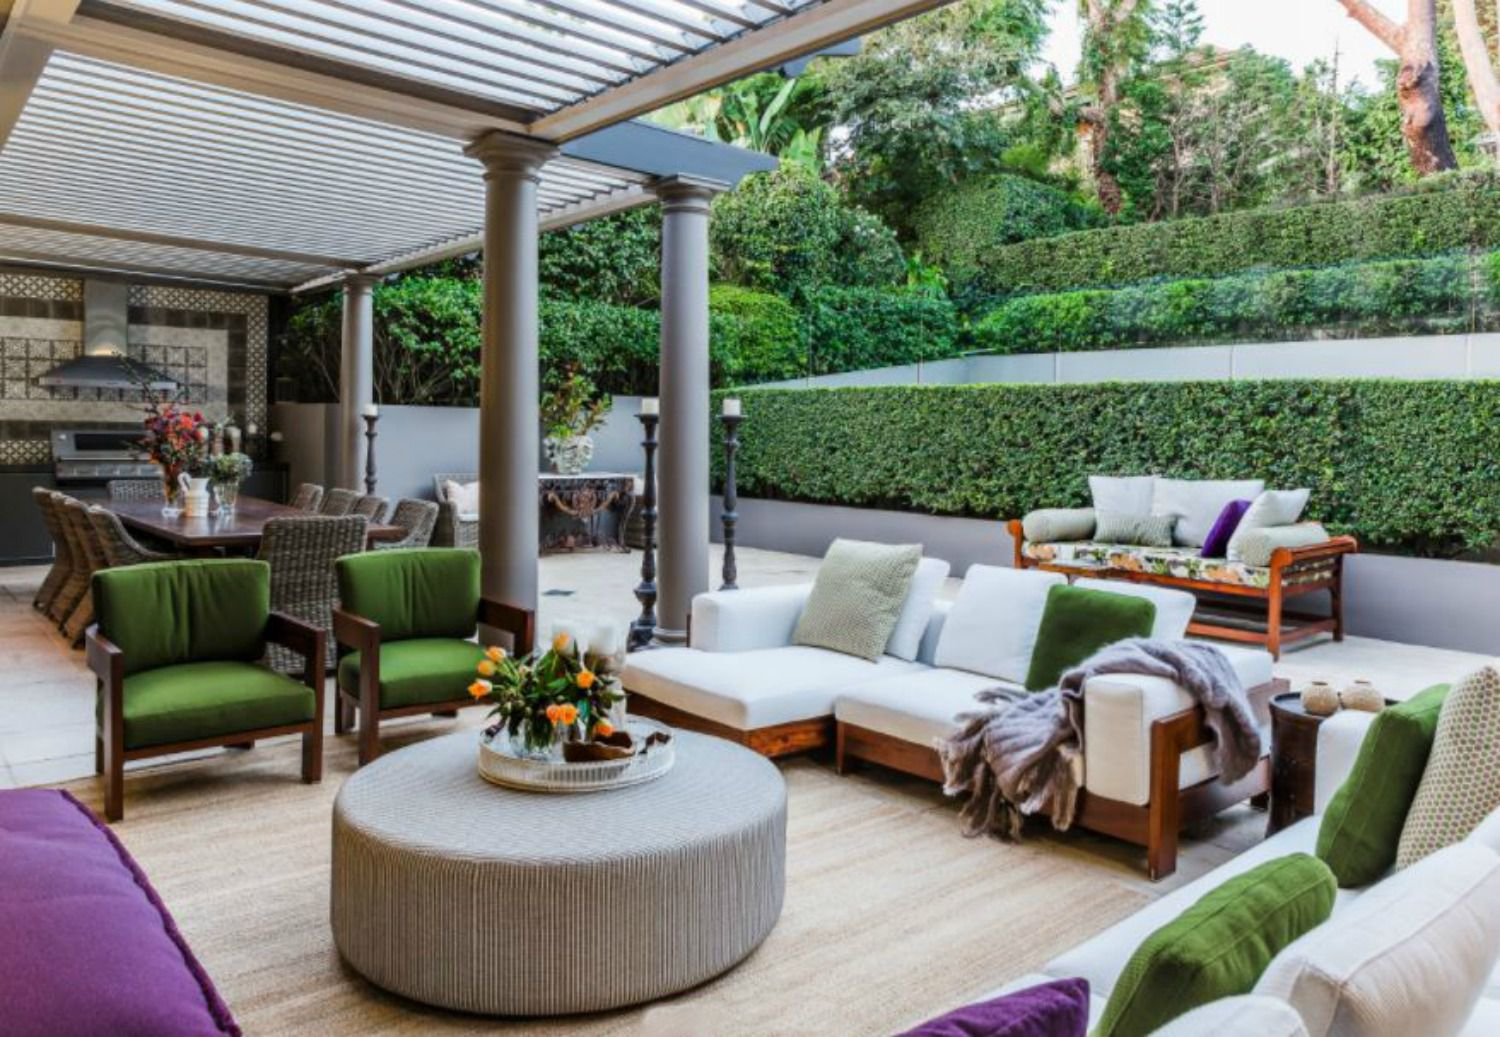 50 Outdoor Living Room Design Ideas with Backyard Outdoor Living Ideas